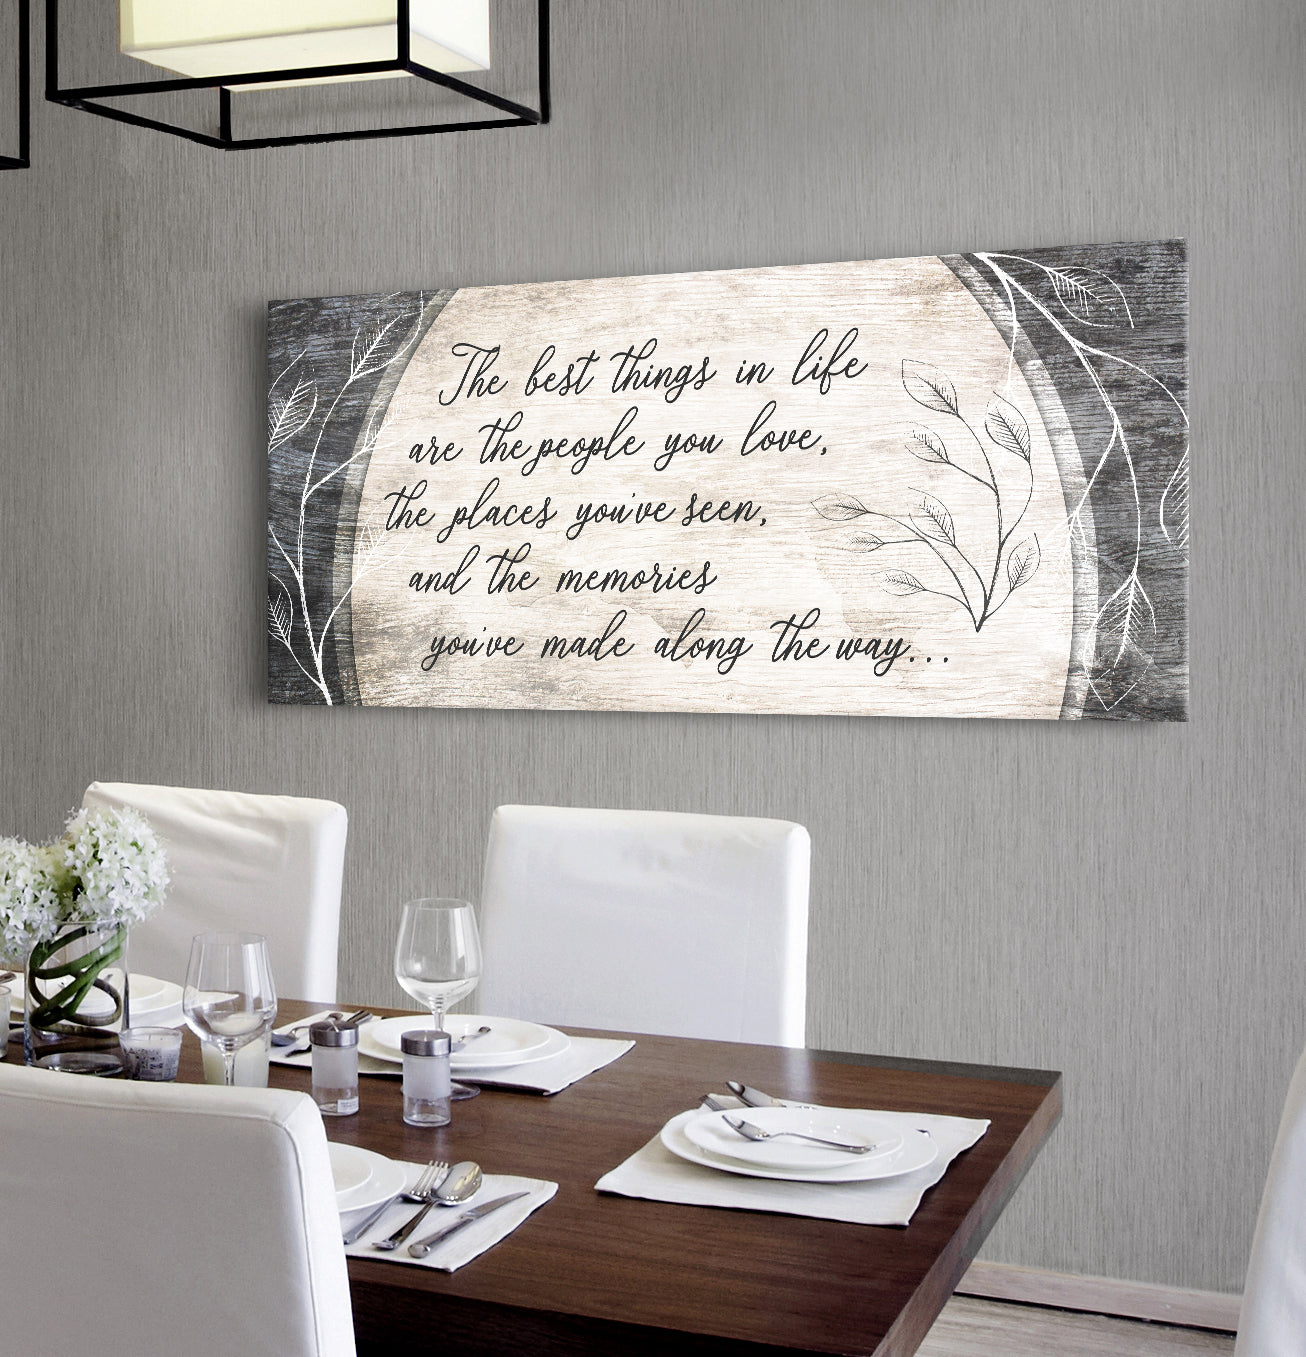 Home Decor Wall Art The Best Things In Life Are People You Love